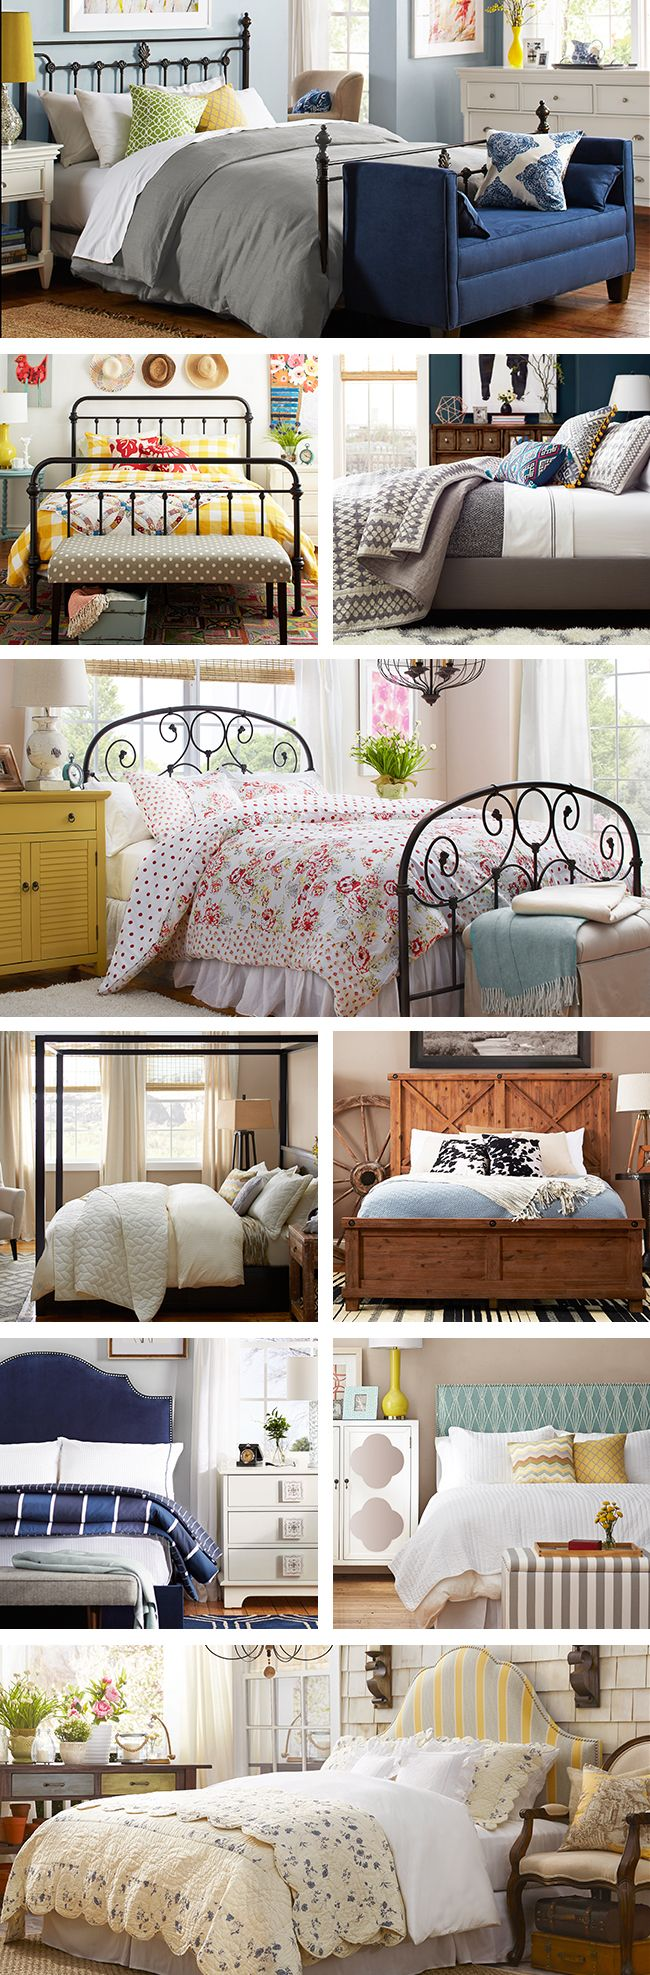 721 best pretty bed images on pinterest child room room ideas and